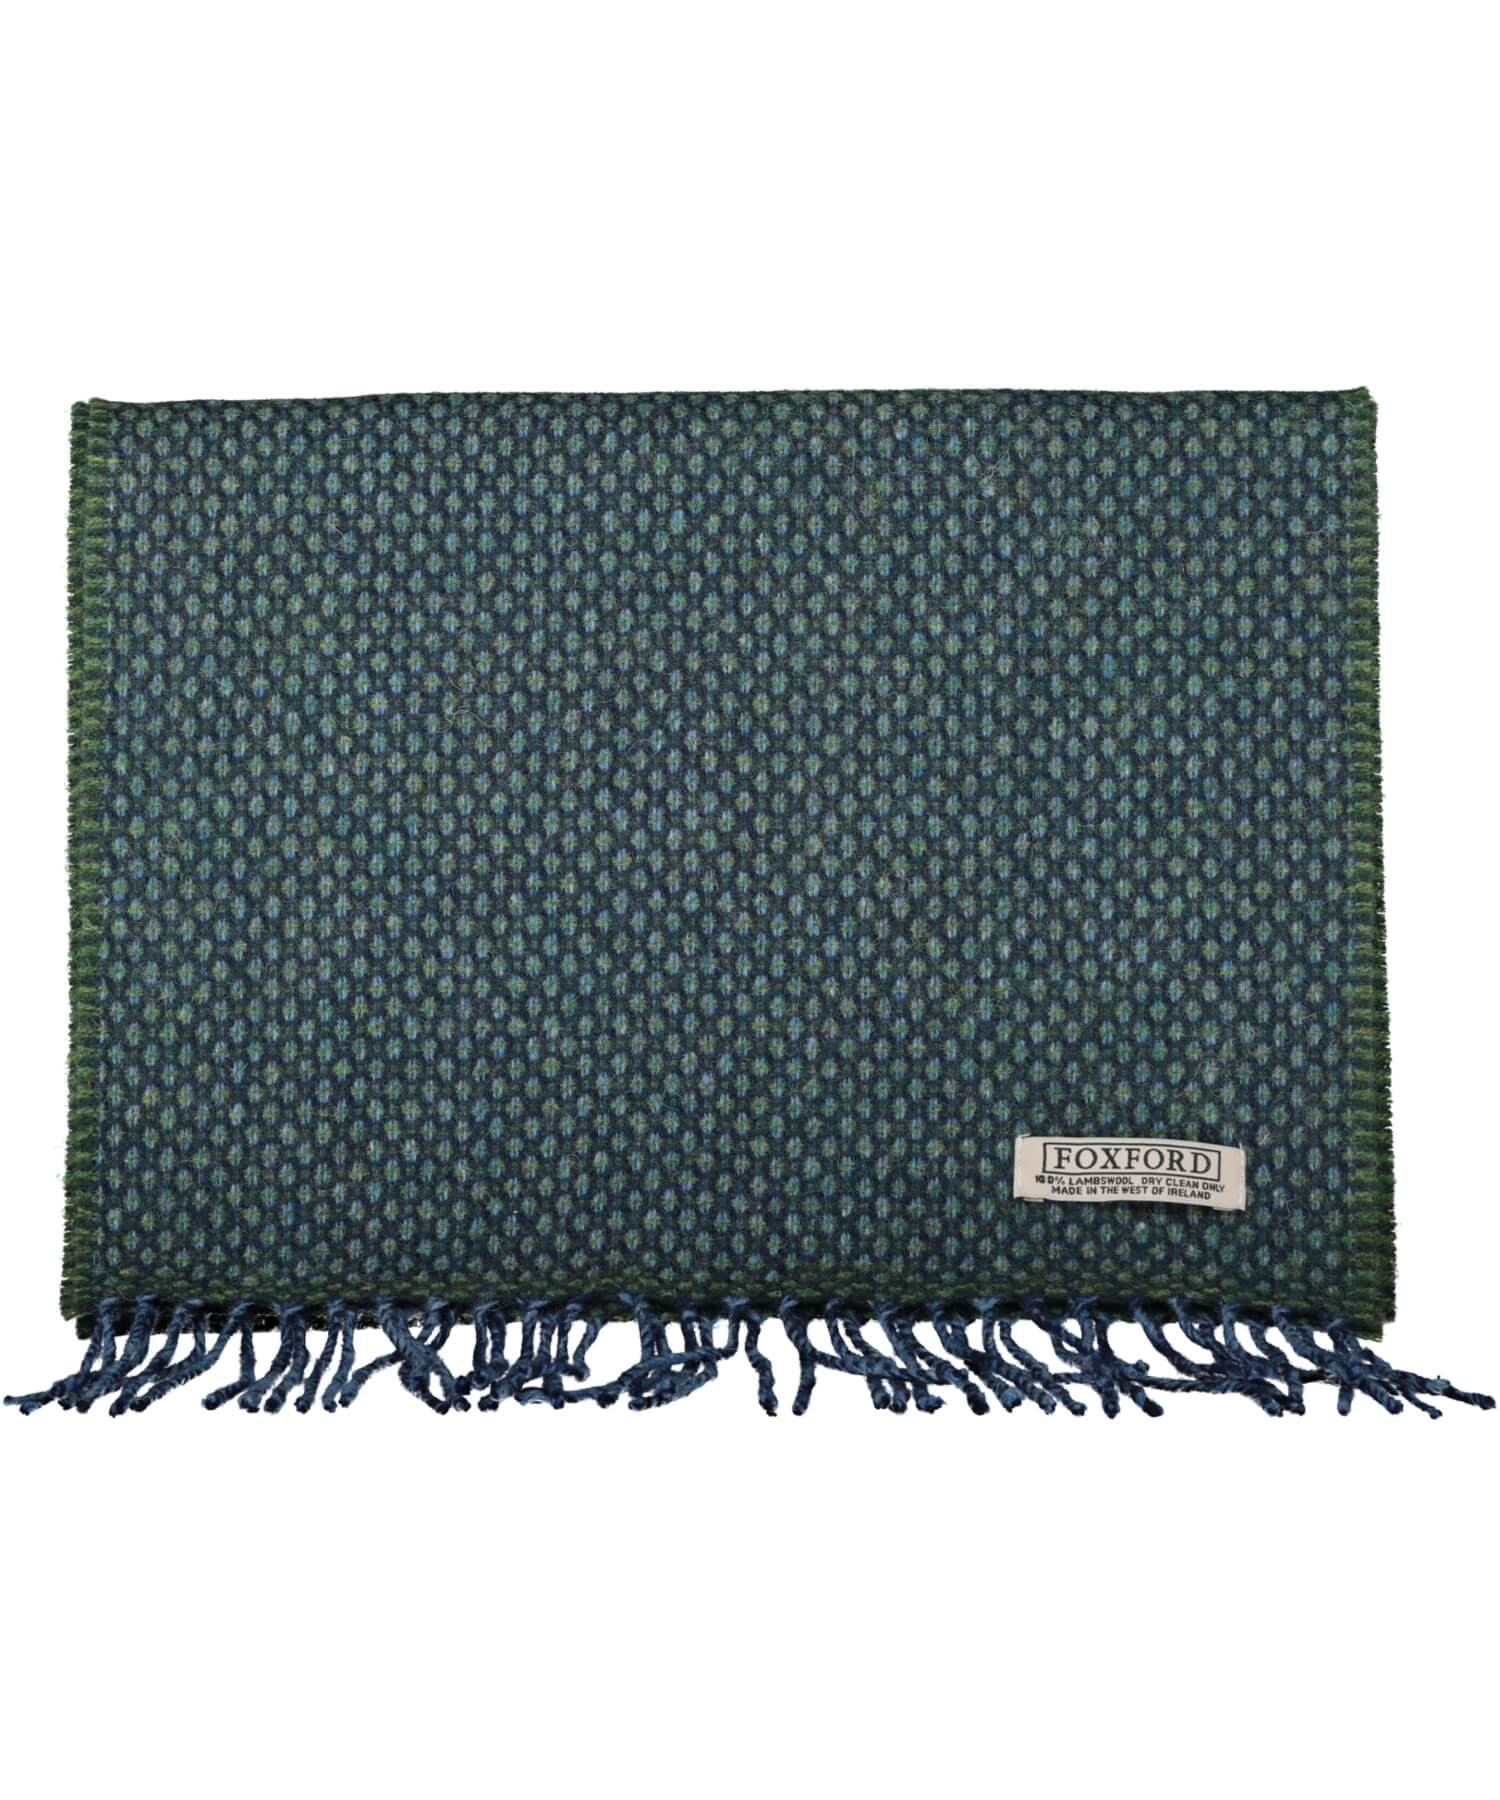 Lambswool Scarf - Studio - [Foxford] - Unisex Scarves - Irish Gifts